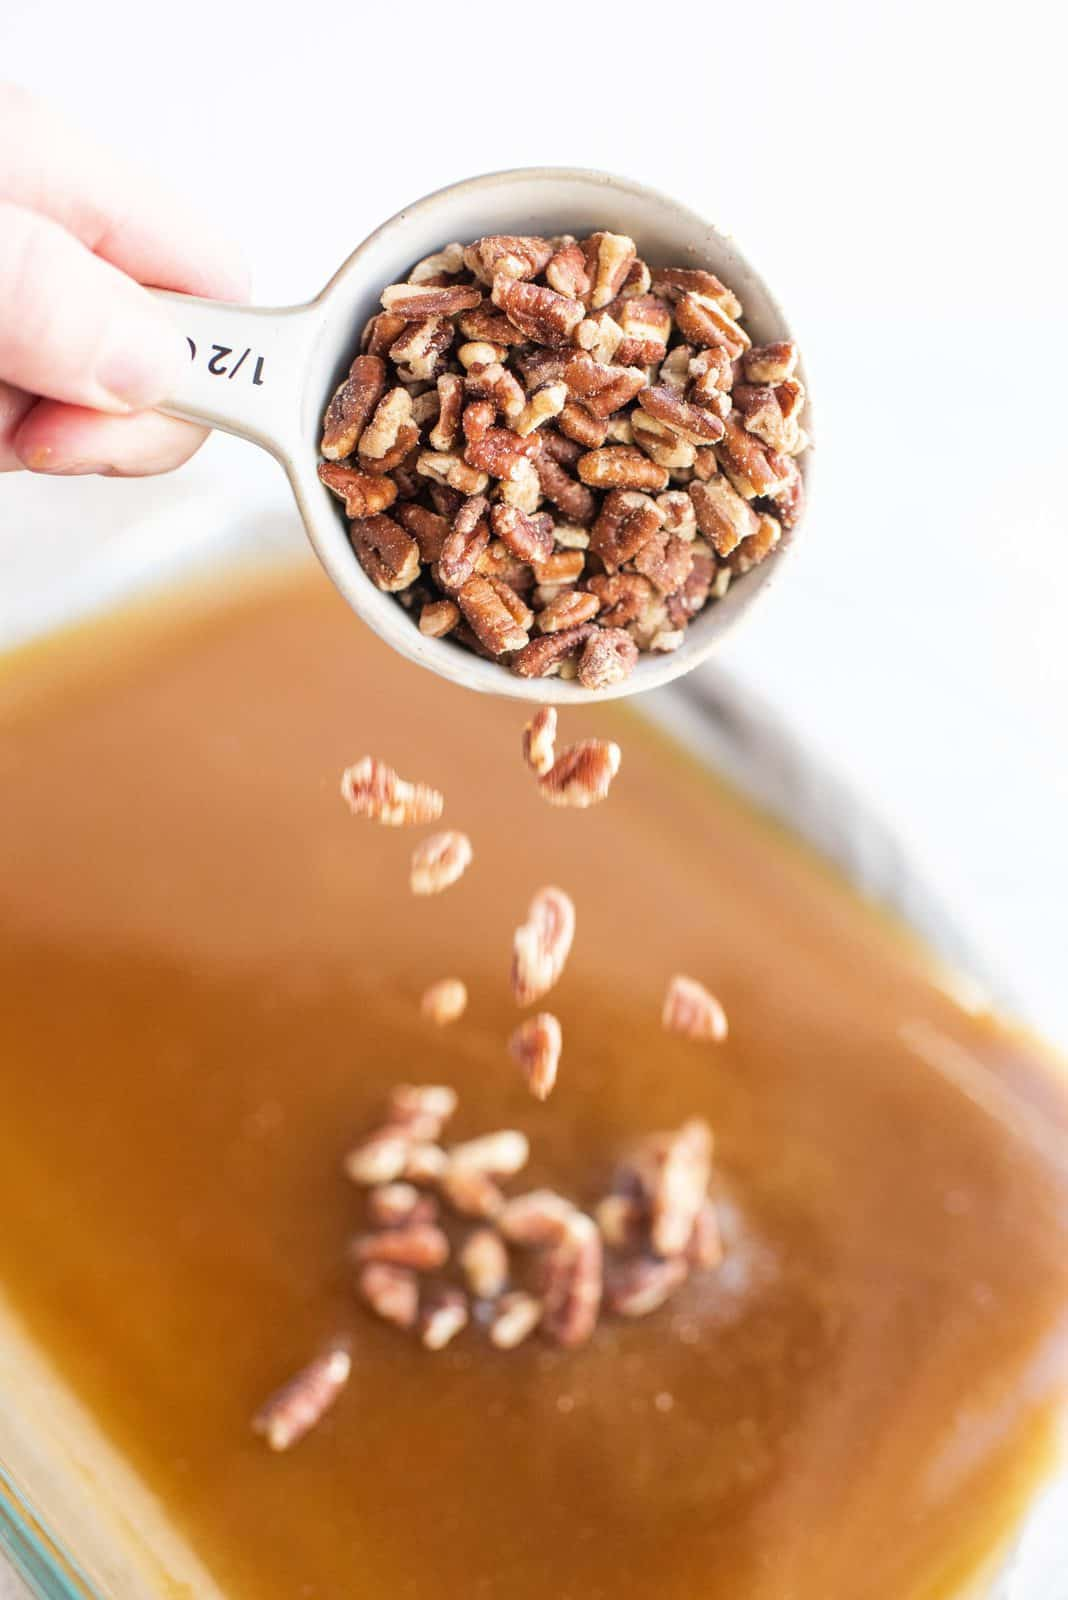 Pecans being added to baking dish.